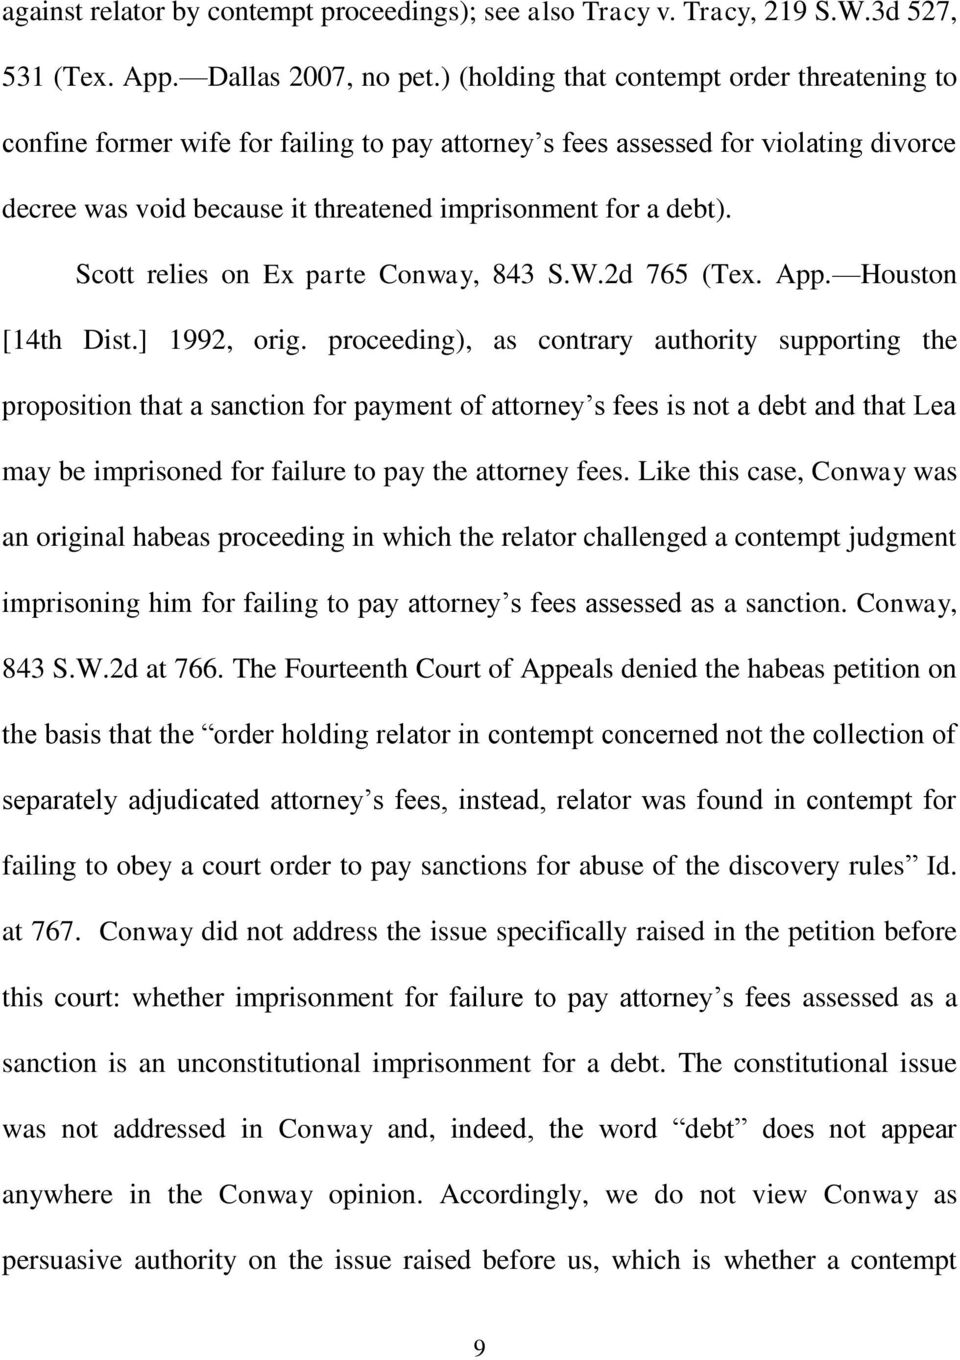 Scott relies on Ex parte Conway, 843 S.W.2d 765 (Tex. App. Houston [14th Dist.] 1992, orig.